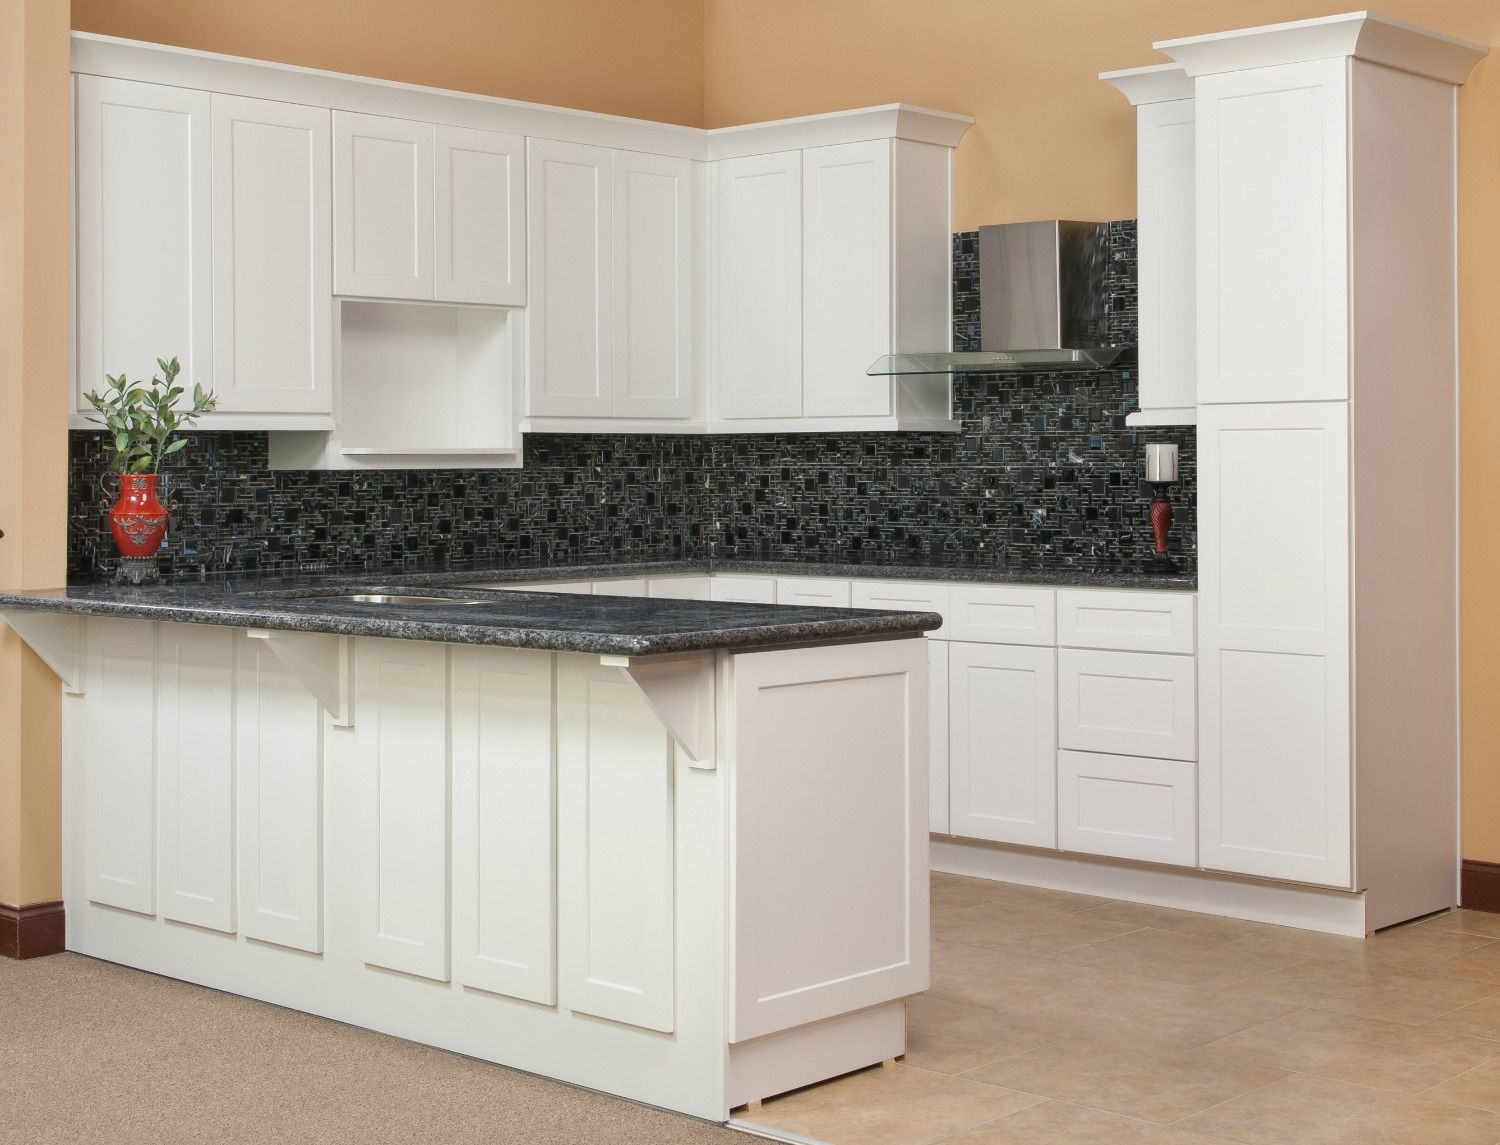 Light grey shaker ready to assemble kitchen cabinets - The Frosted White Shaker Cabinets Offer A Brilliant Bright White Finish Find This Pin And More On Rta Kitchen